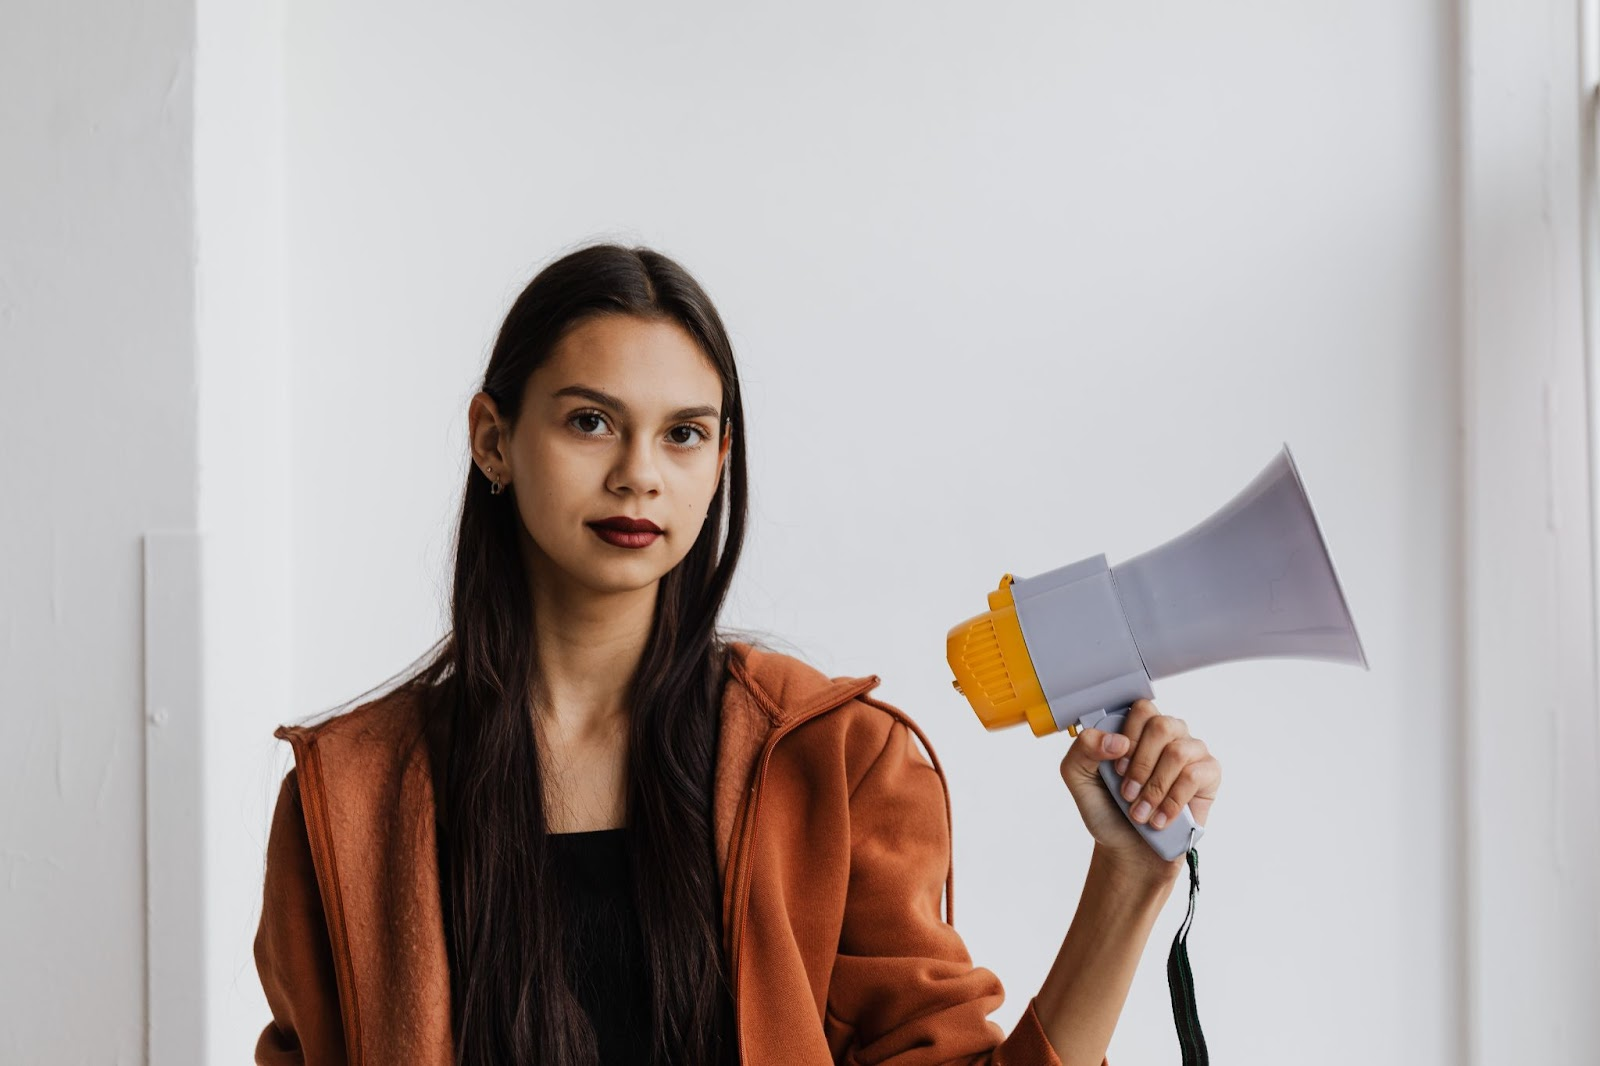 A woman holding a megaphone looks calmly and purposely at the viewer.